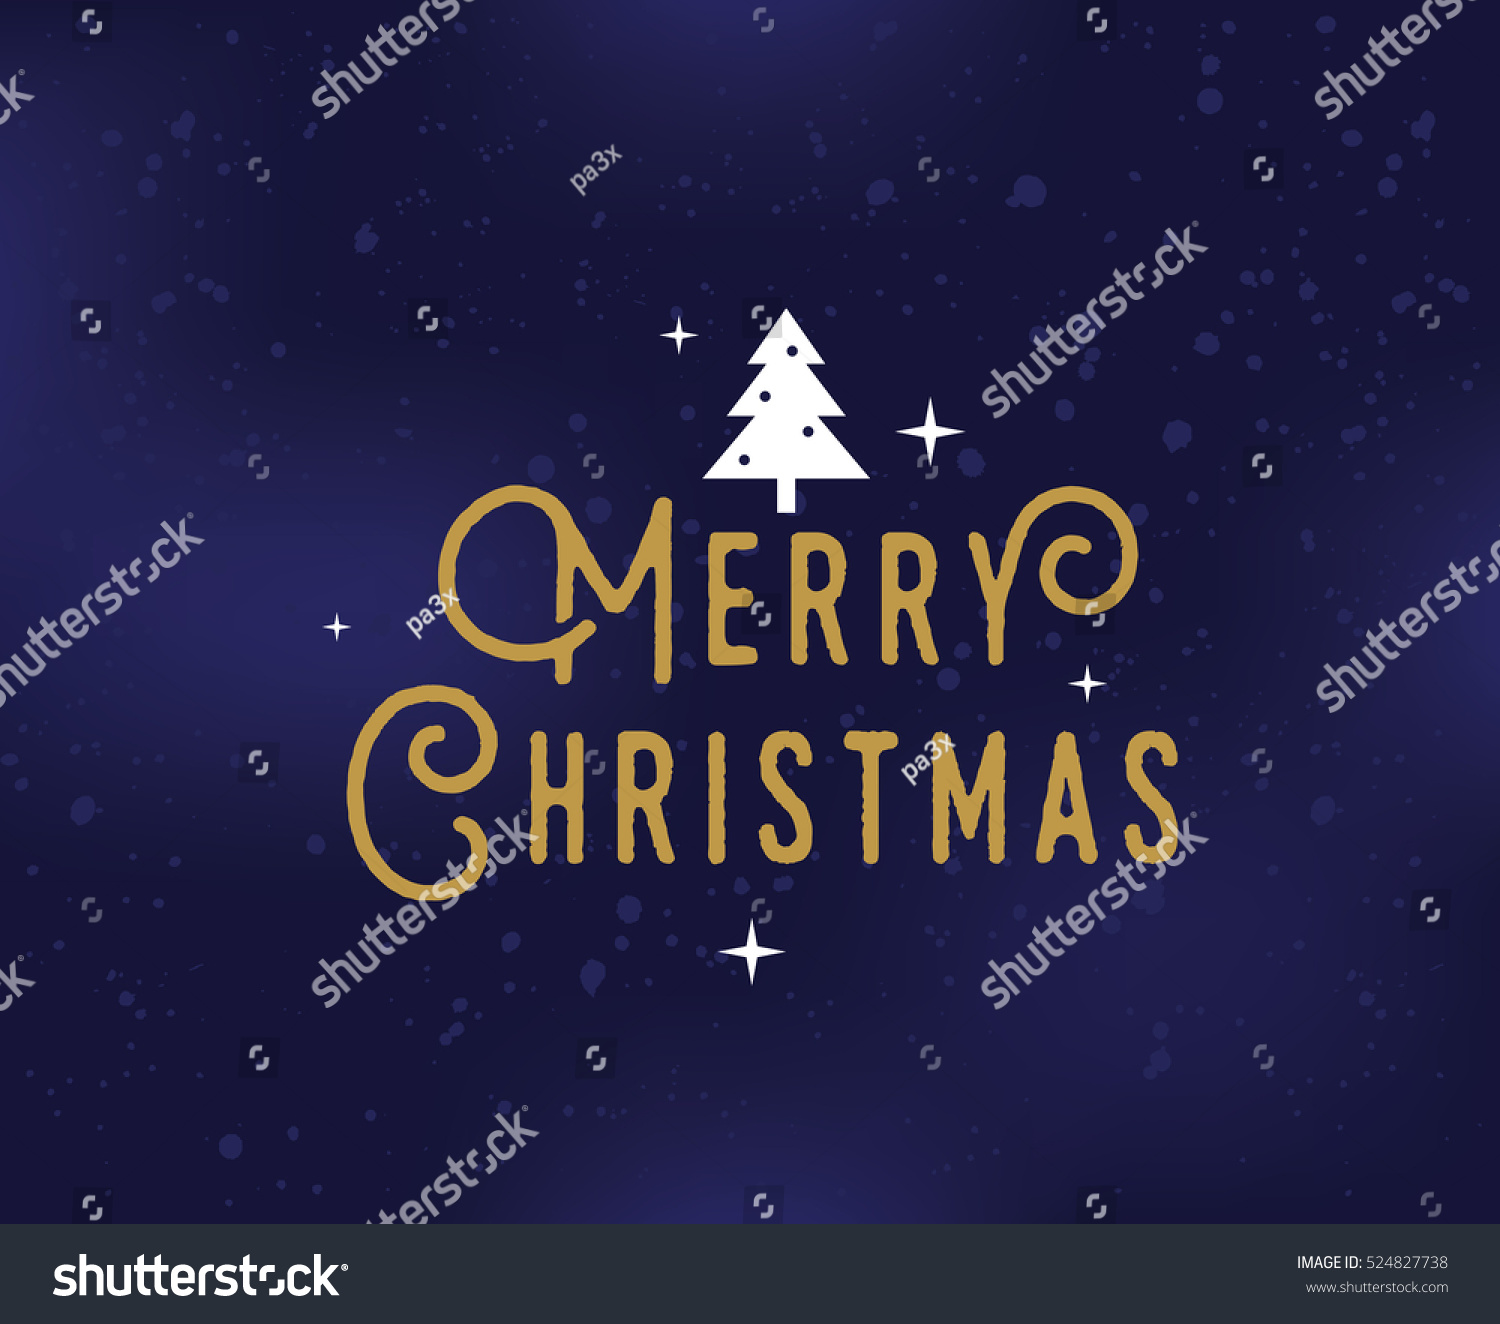 Merry christmas text design vector logo stock vector 524827738 merry christmas text design vector logo typography usable as banner greeting card kristyandbryce Image collections